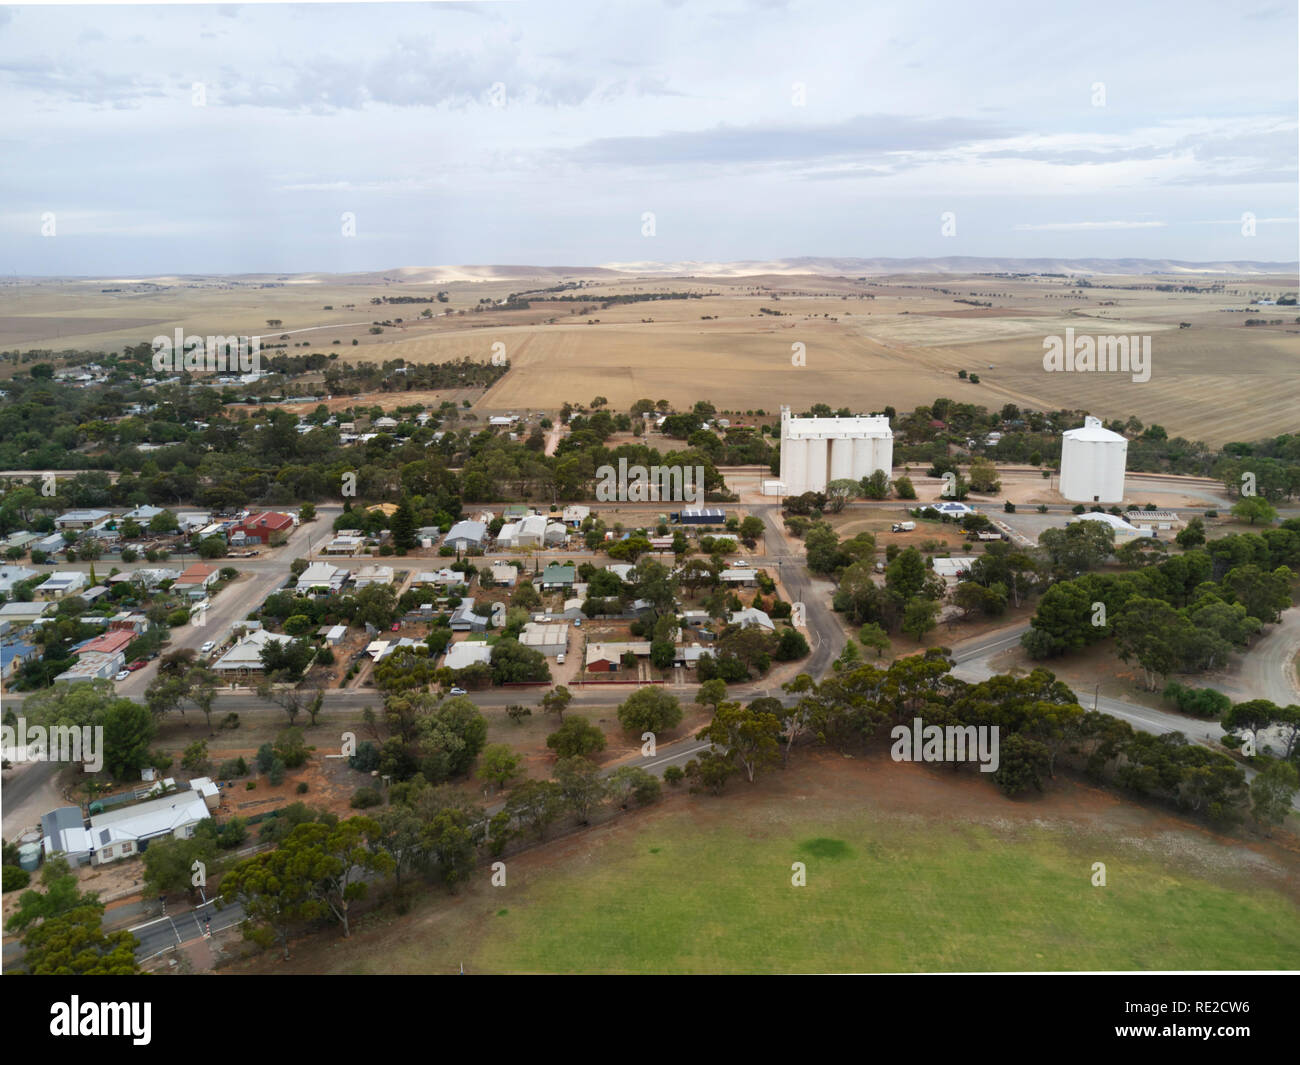 Aerials of historic agricultural settlement of Gladstone South Australia - Stock Image